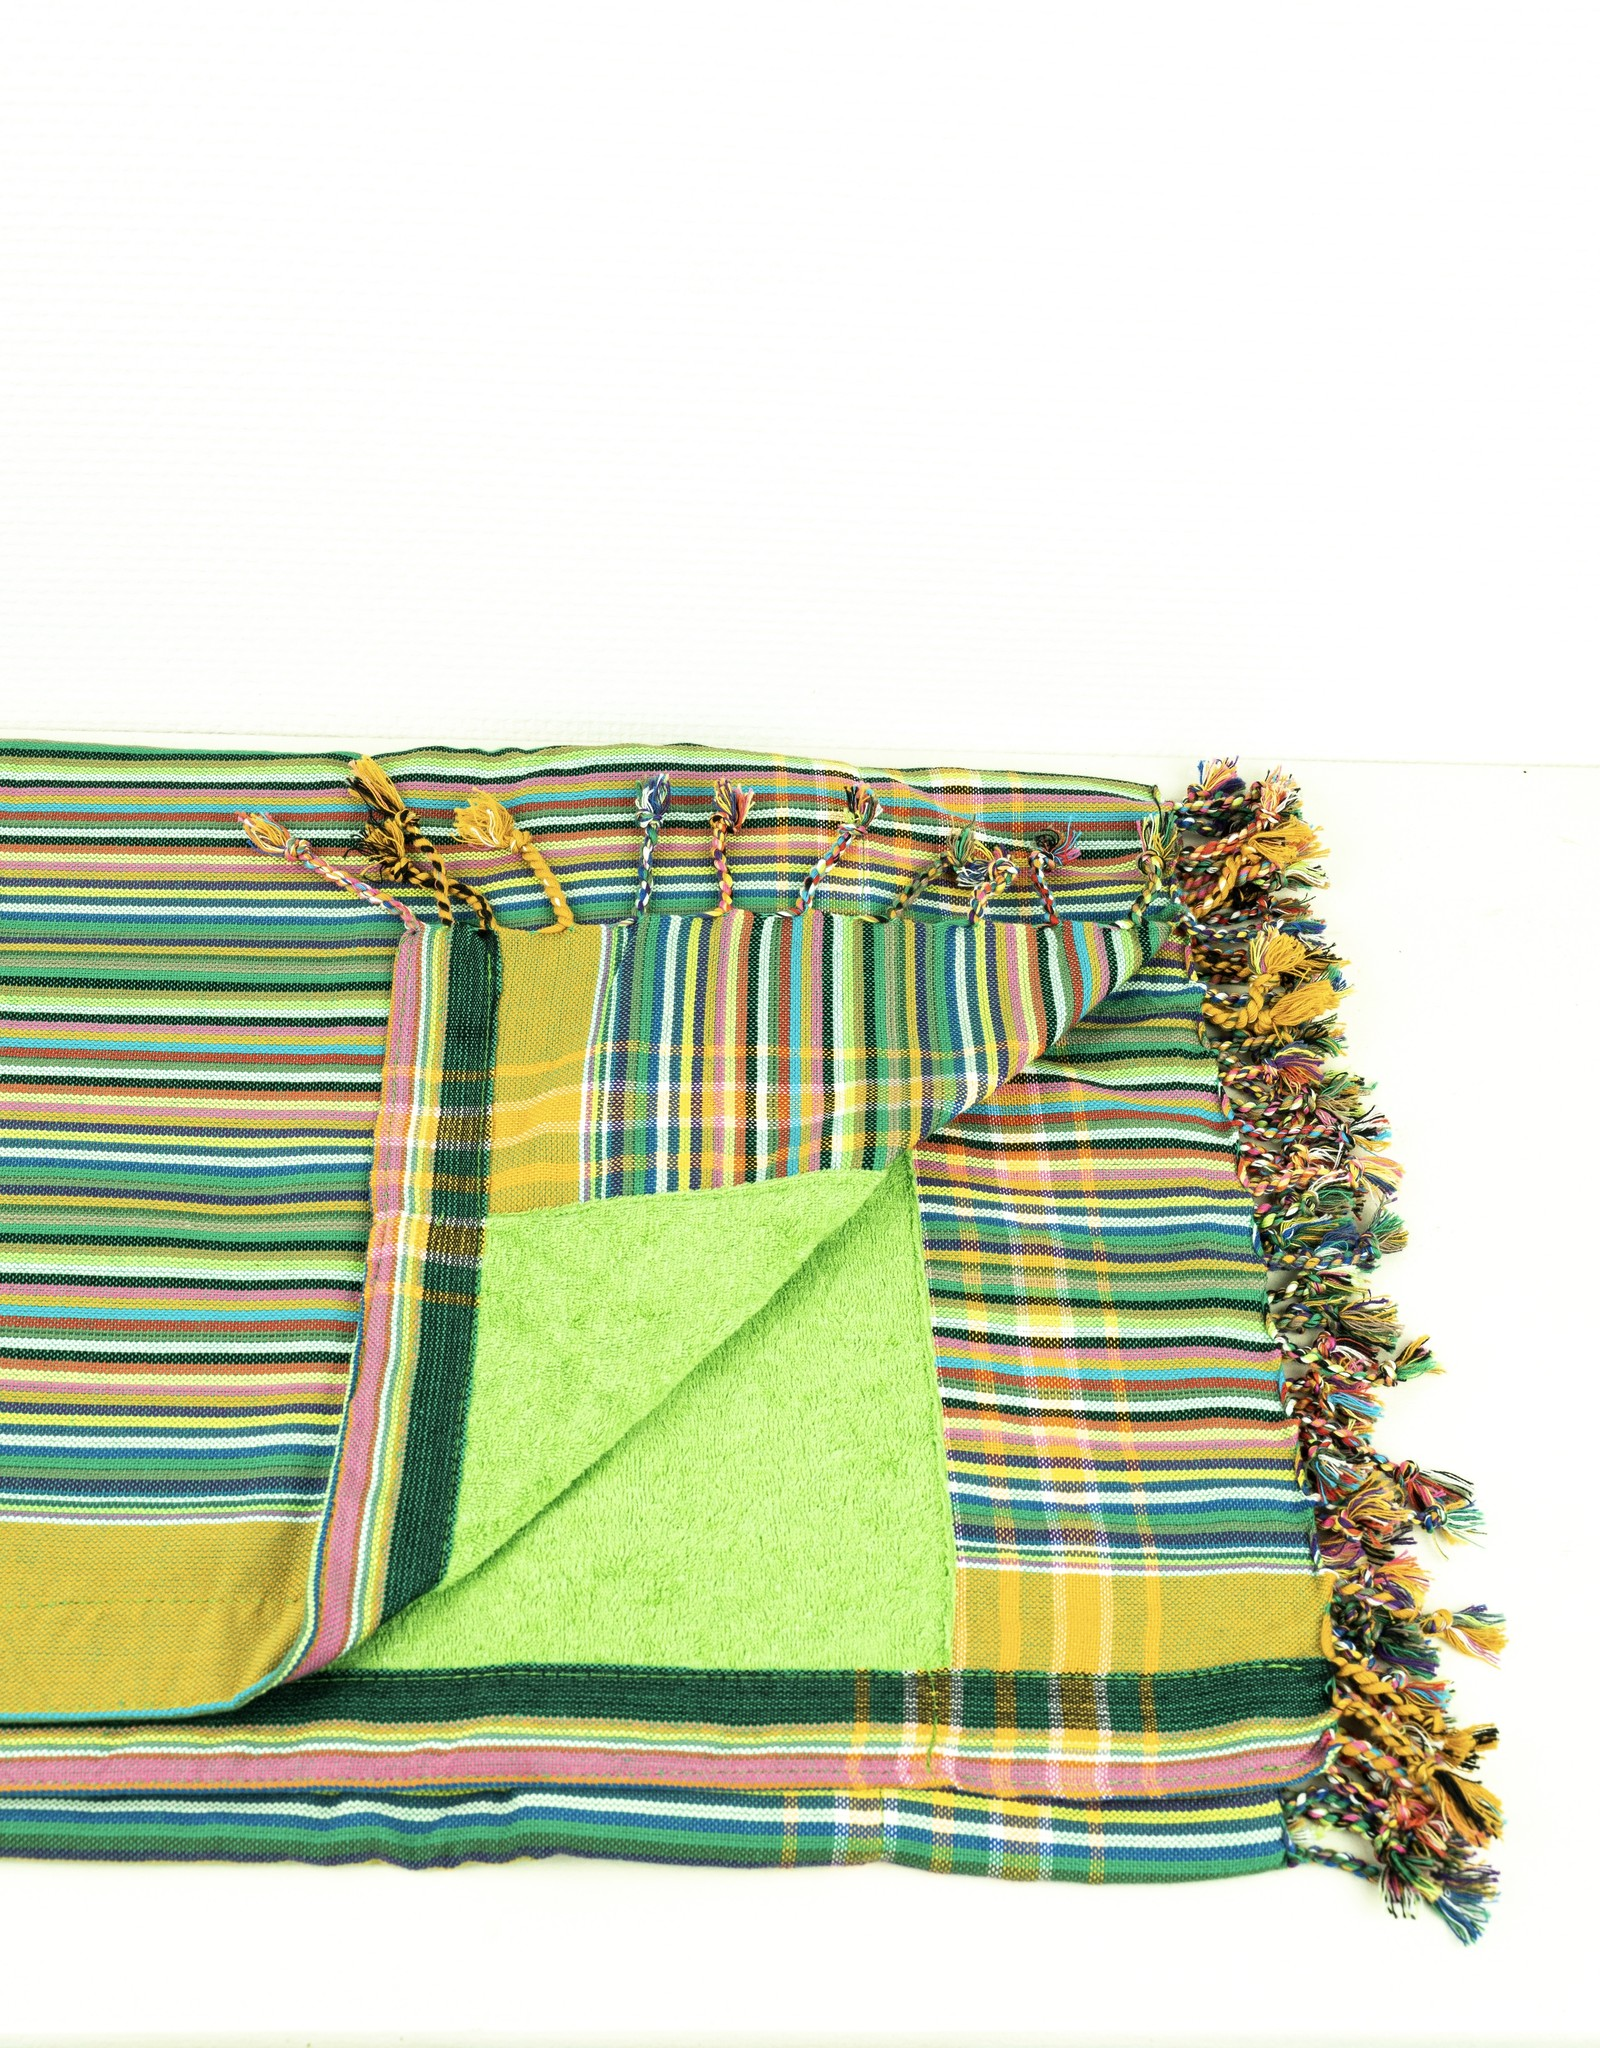 Maisha.Style Kikoy towel - stripey green with lime green towel lining